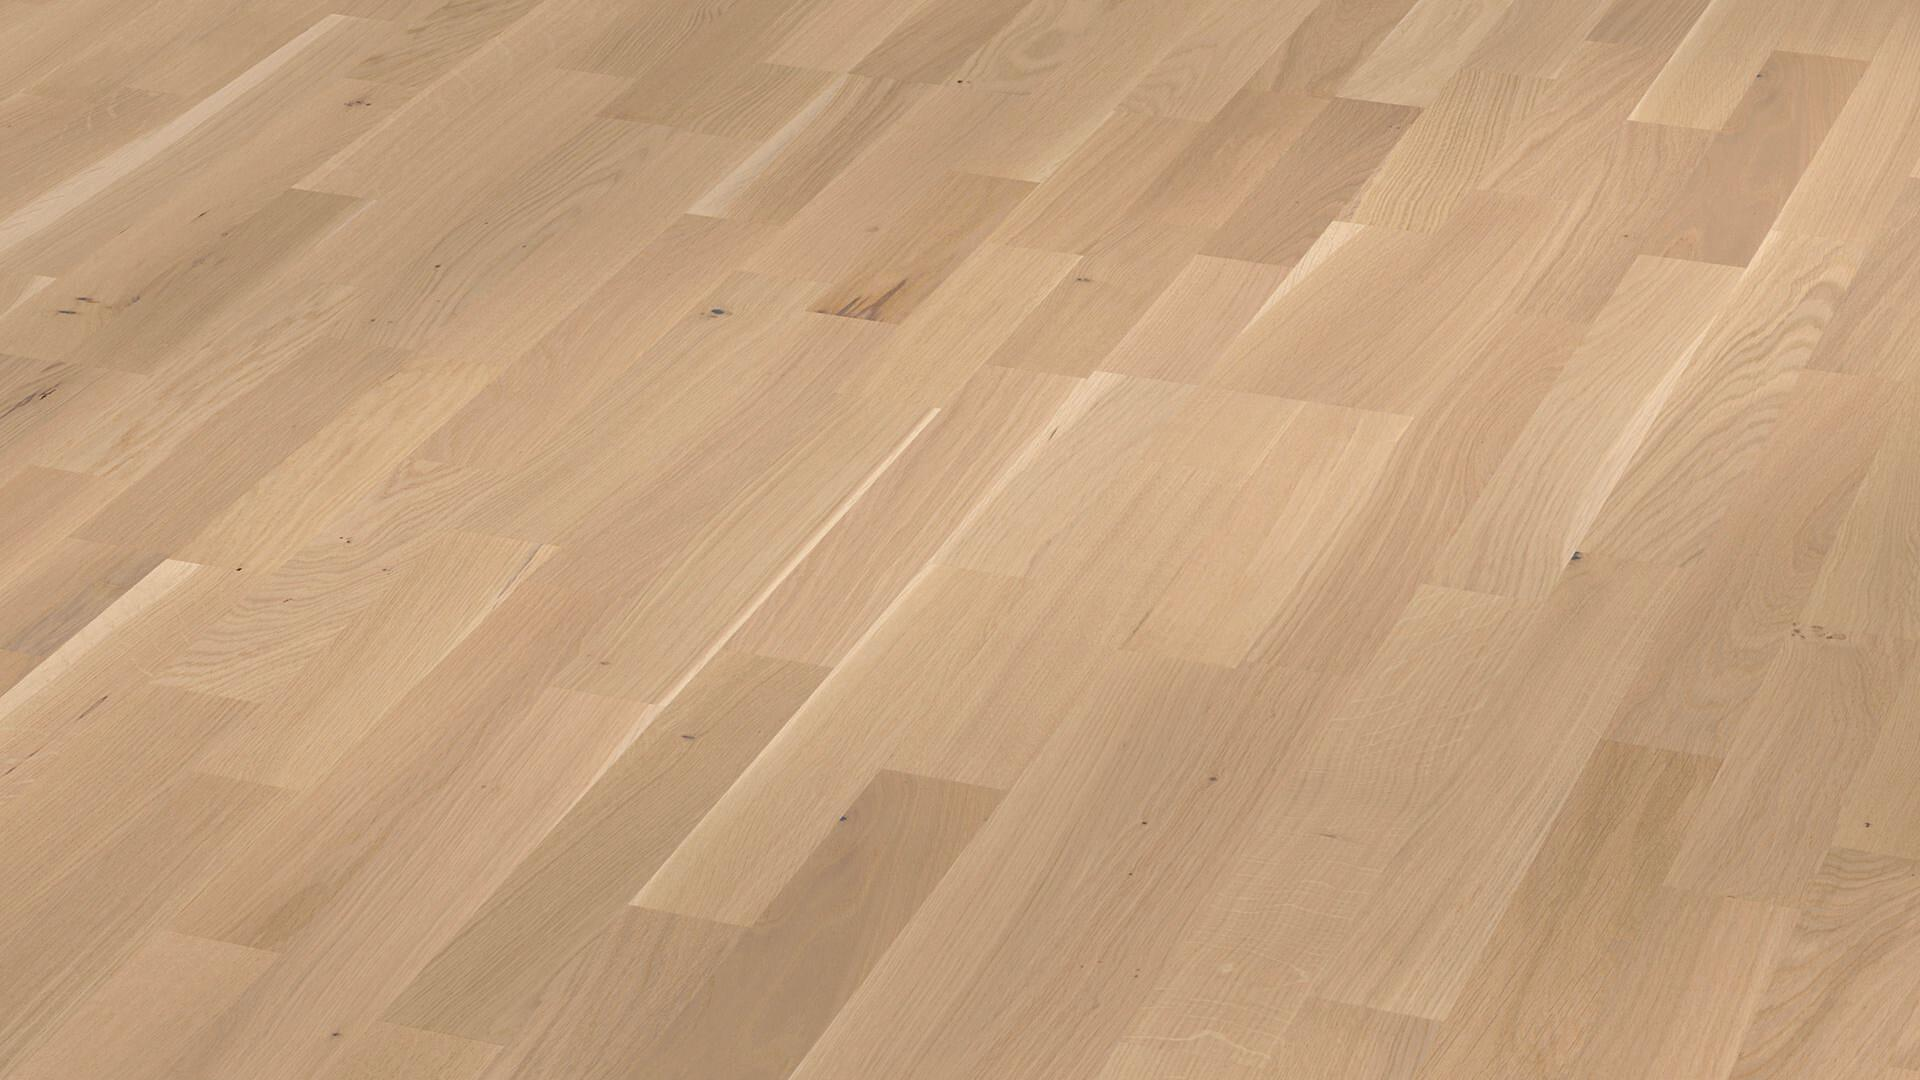 Parquet flooring MeisterParquet. longlife PC 200 Off-white oak lively 8349